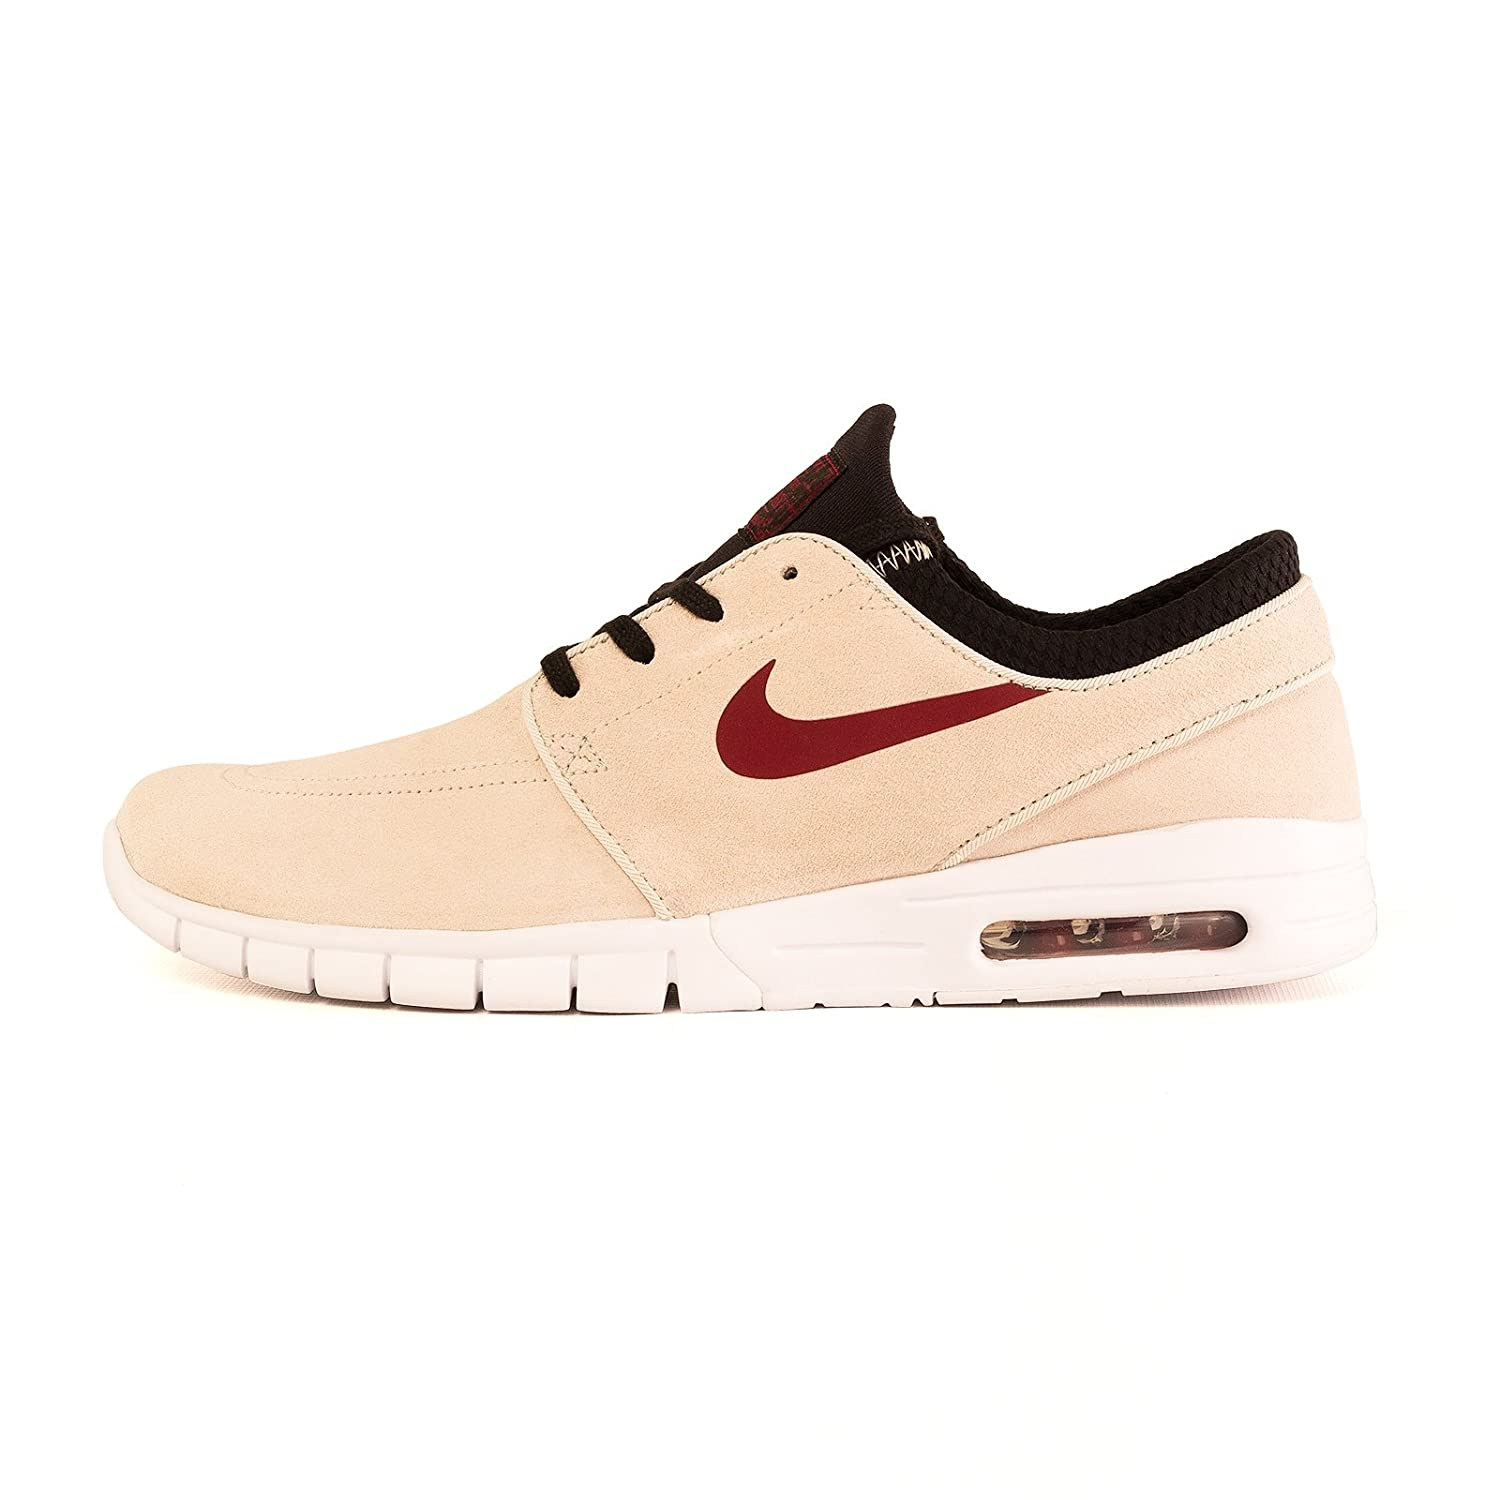 sale retailer da9dc 082e9 Nike SB Stefan Janoski Max L Men s Skateboarding Shoe white Size  5.5 UK   Amazon.co.uk  Shoes   Bags